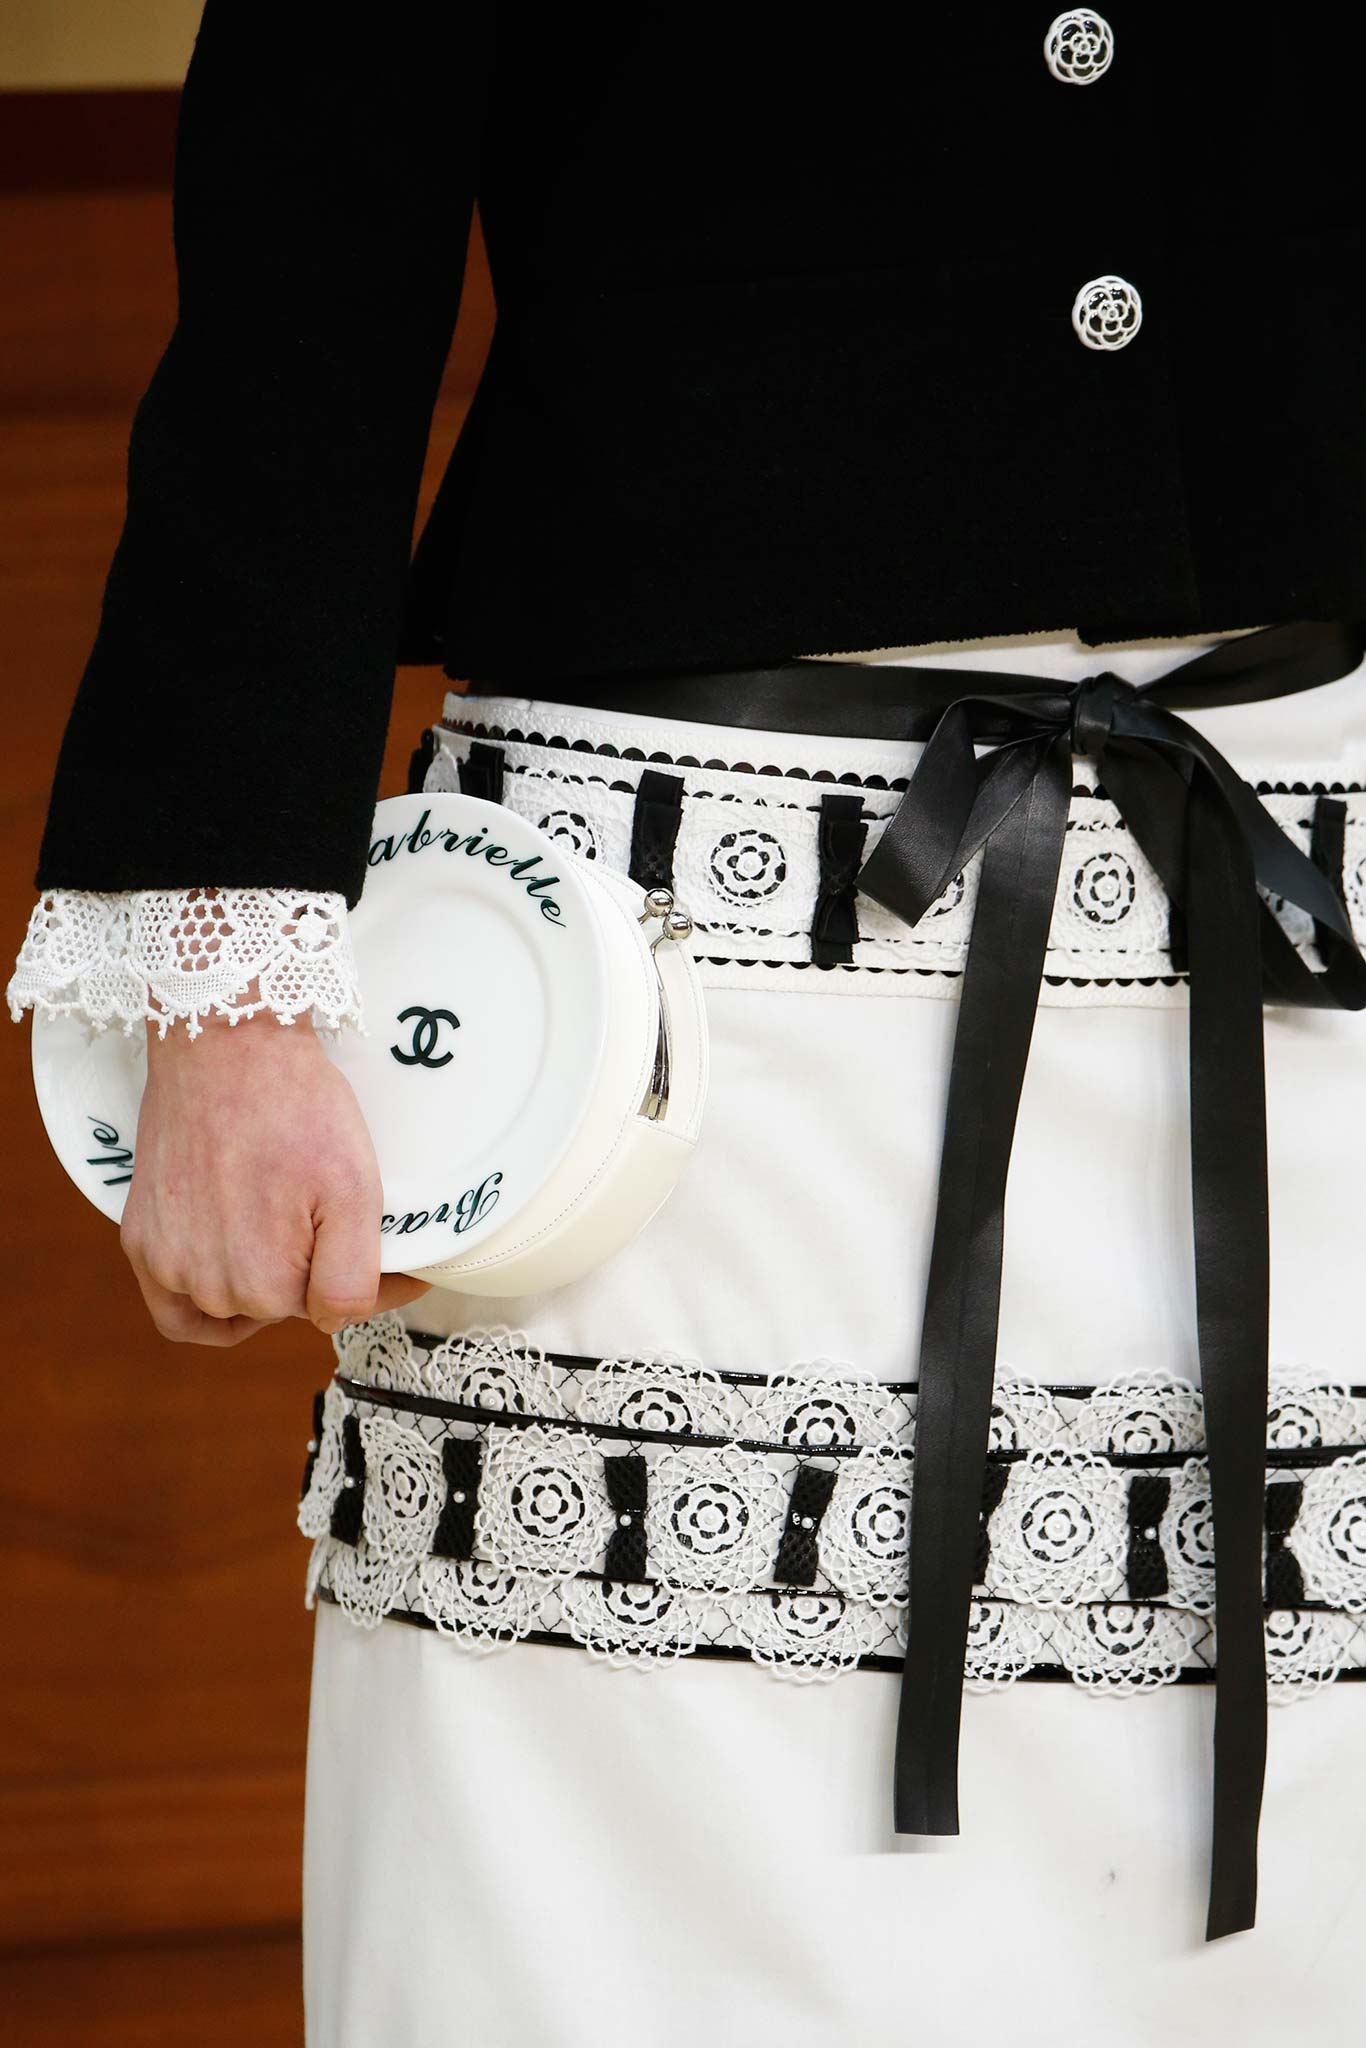 Louis Shop Chanel Fall/winter 2015 Runway Bag Collection Featuring